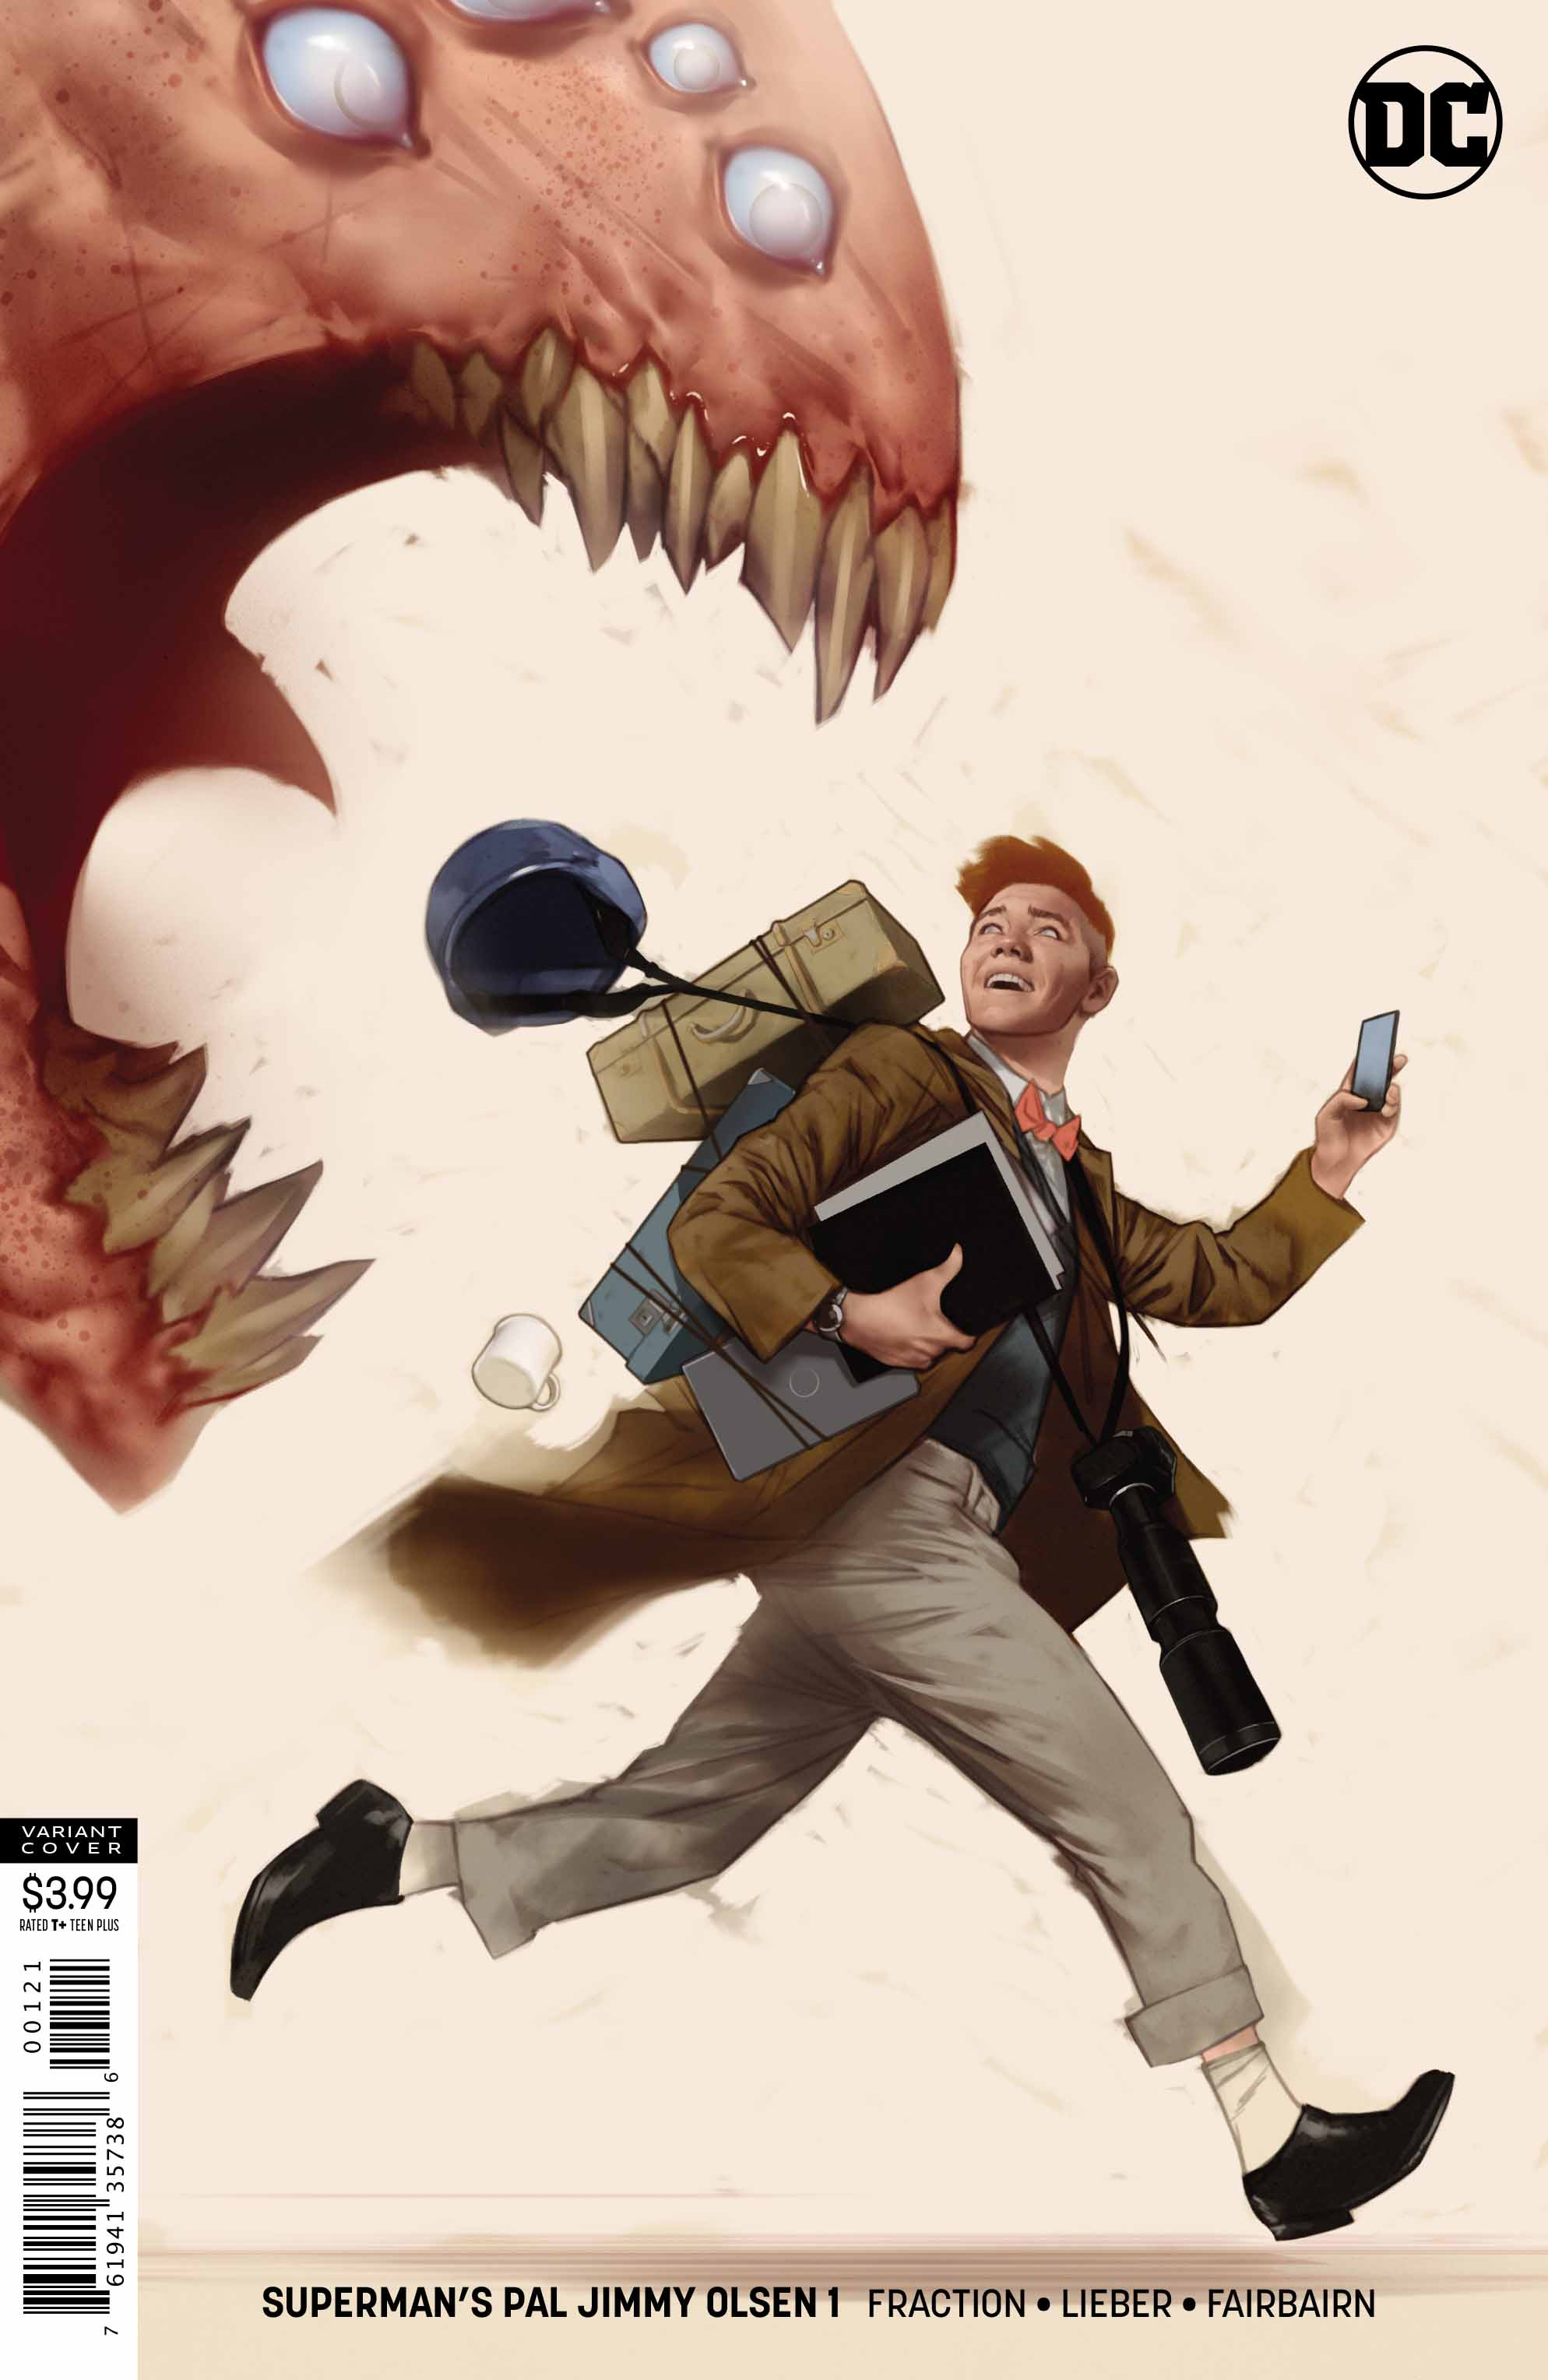 superman's pal jimmy olsen #1 variant 2019 cover